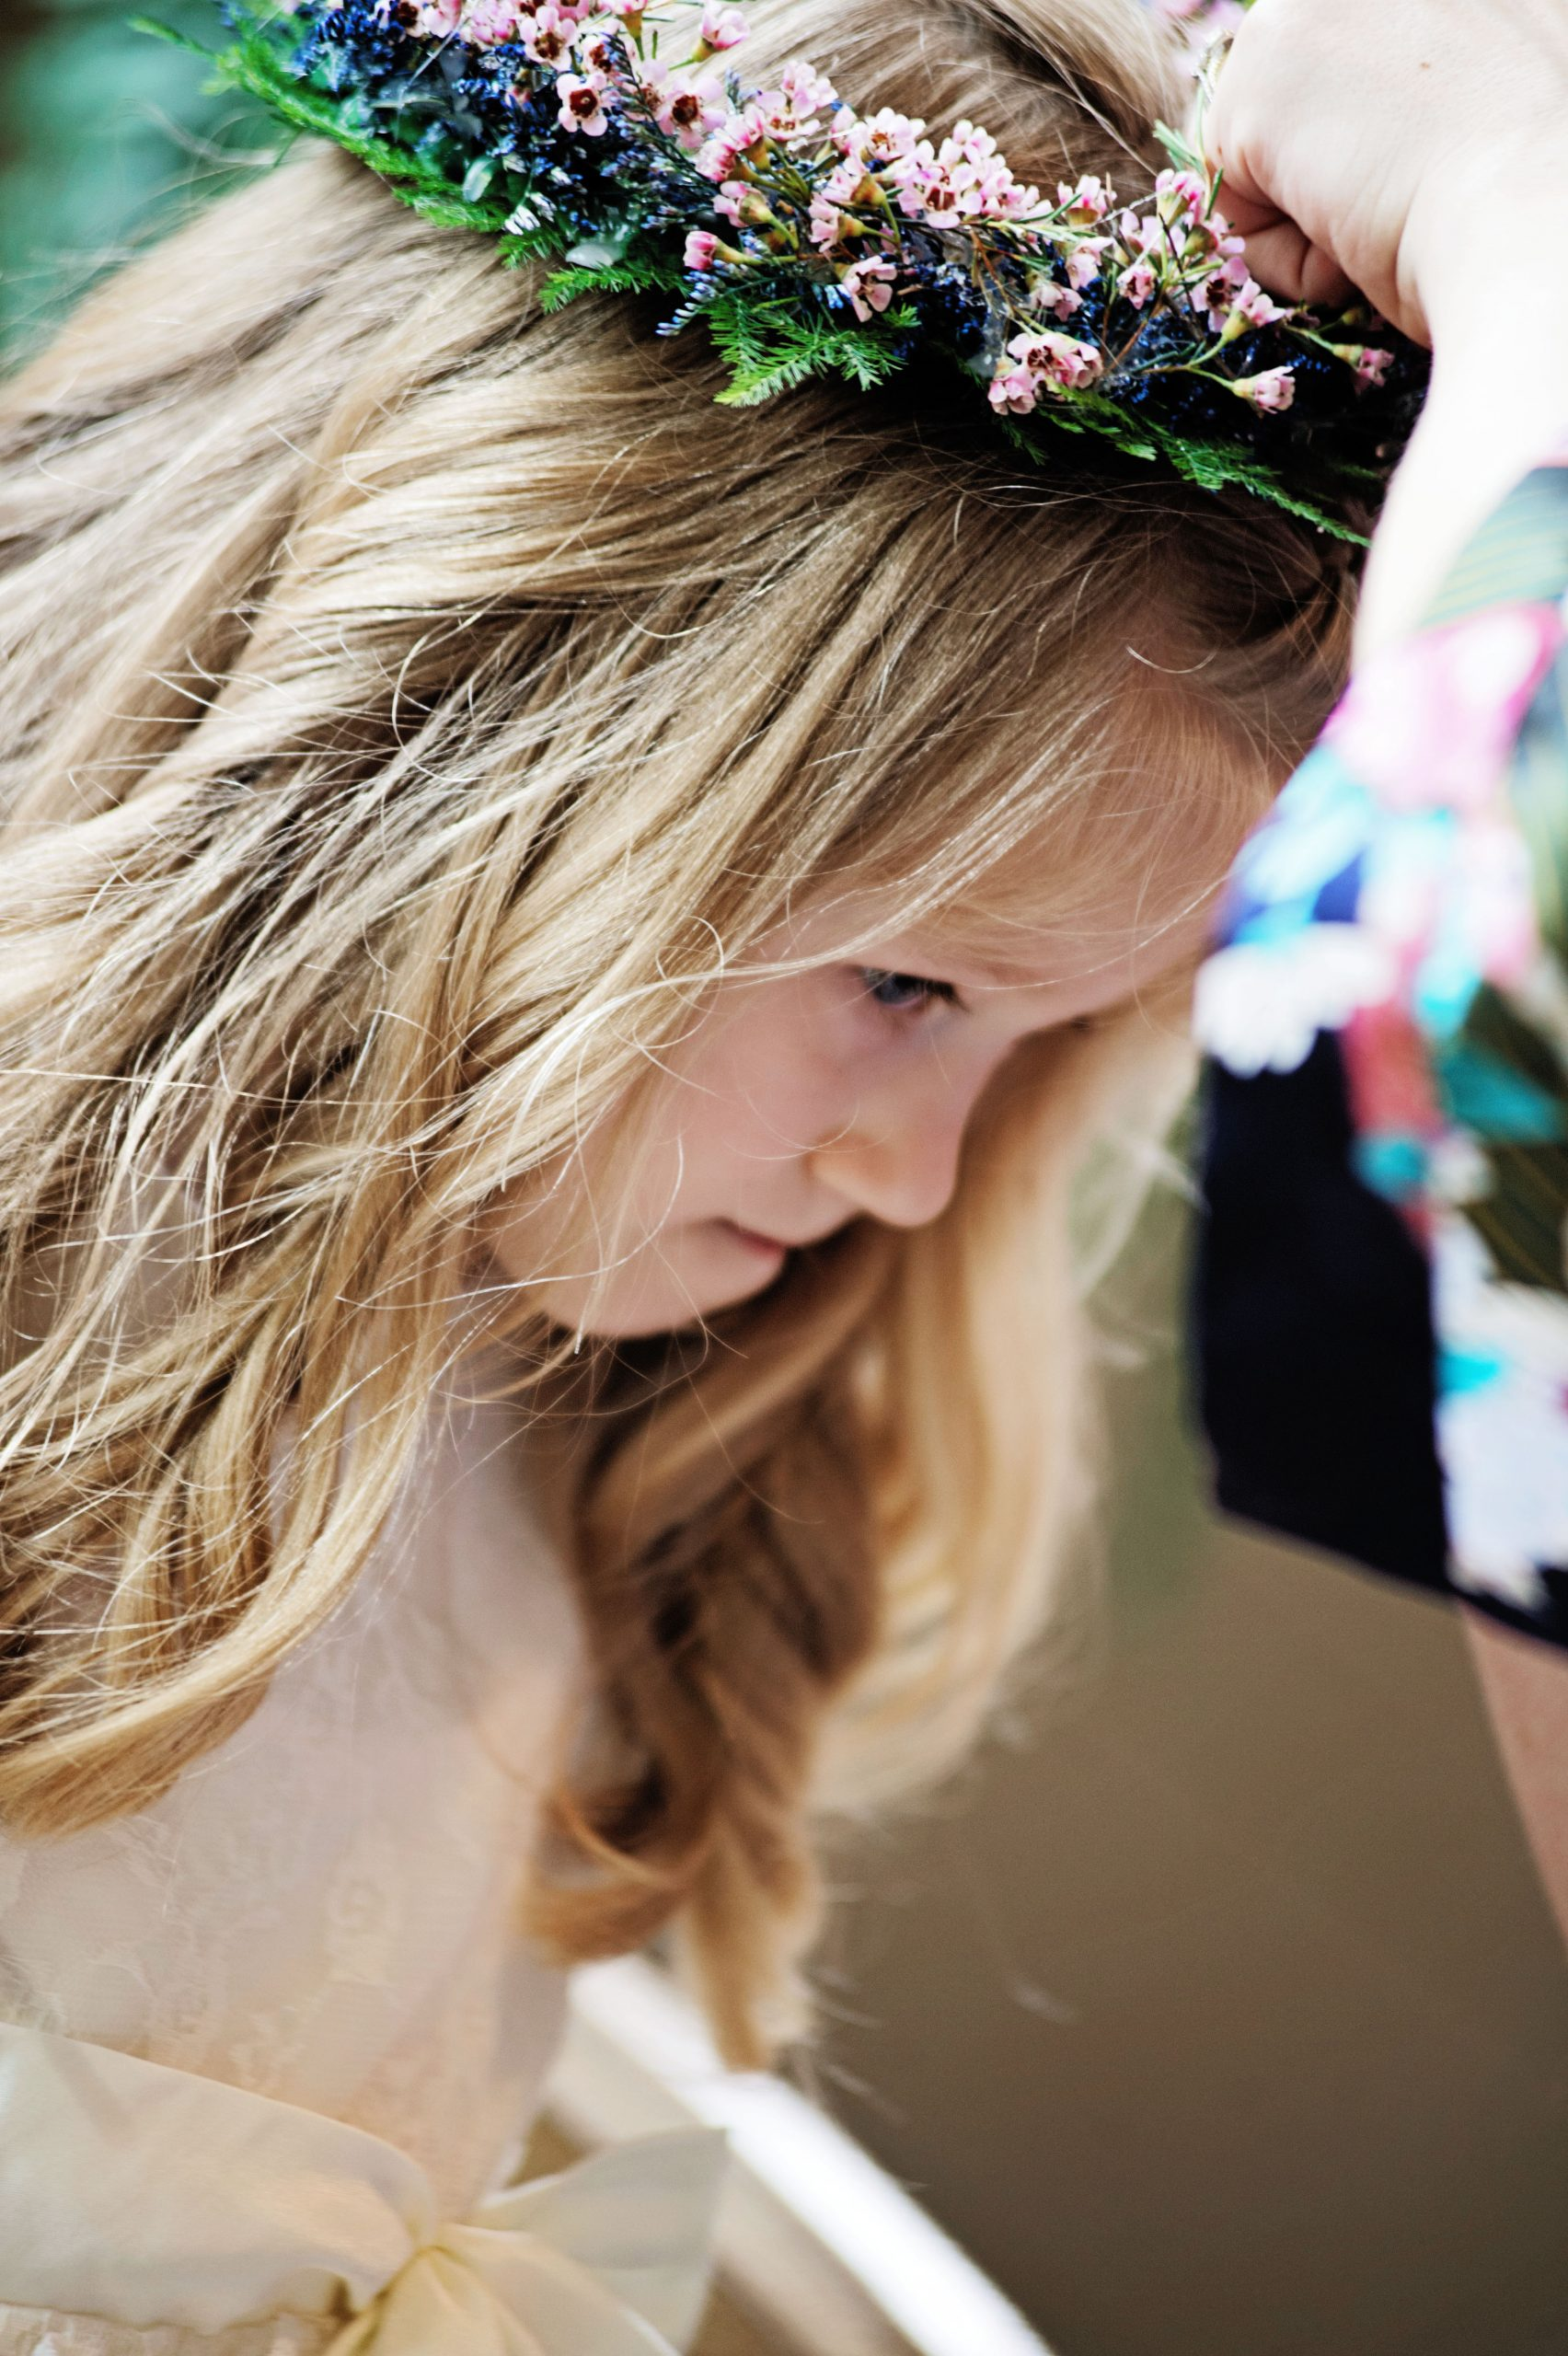 All the details beautifully captured by Lovefusion Photography. A crown of flowers halos this flower girls' angelic head as she prepares to help Kady walk down the isle at Lakeview Farms in York, PA. Featured in Dream Weddings.